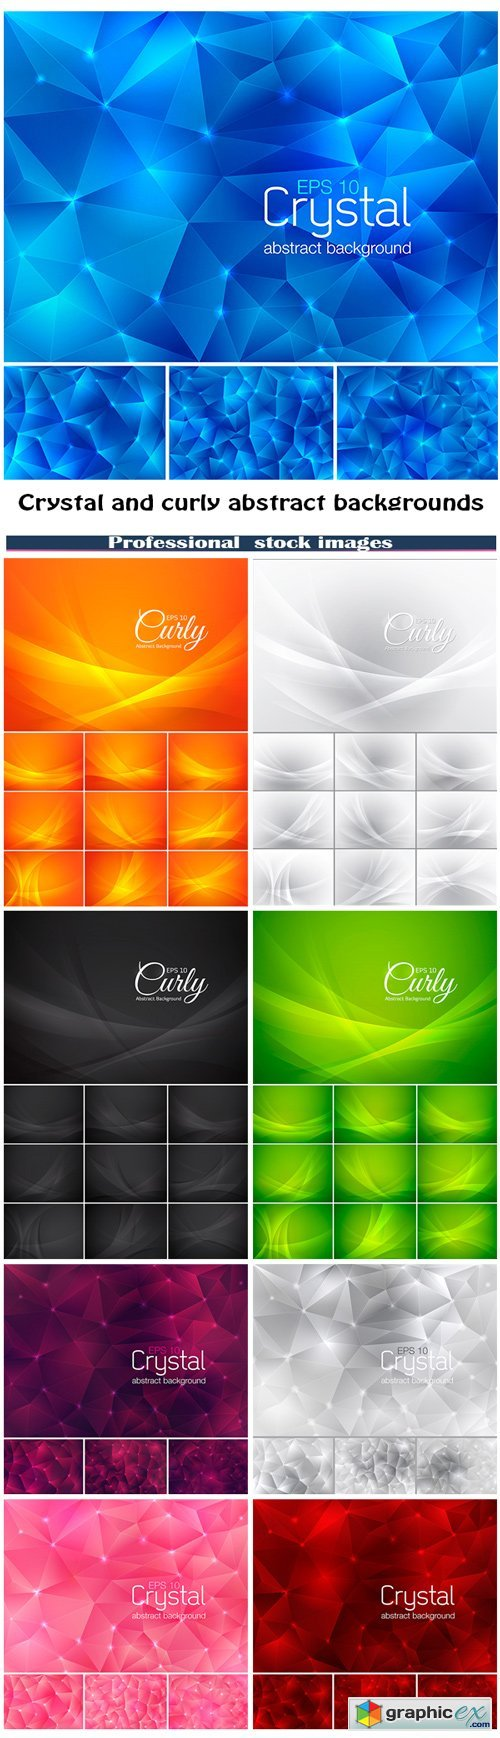 Crystal and curly abstract backgrounds